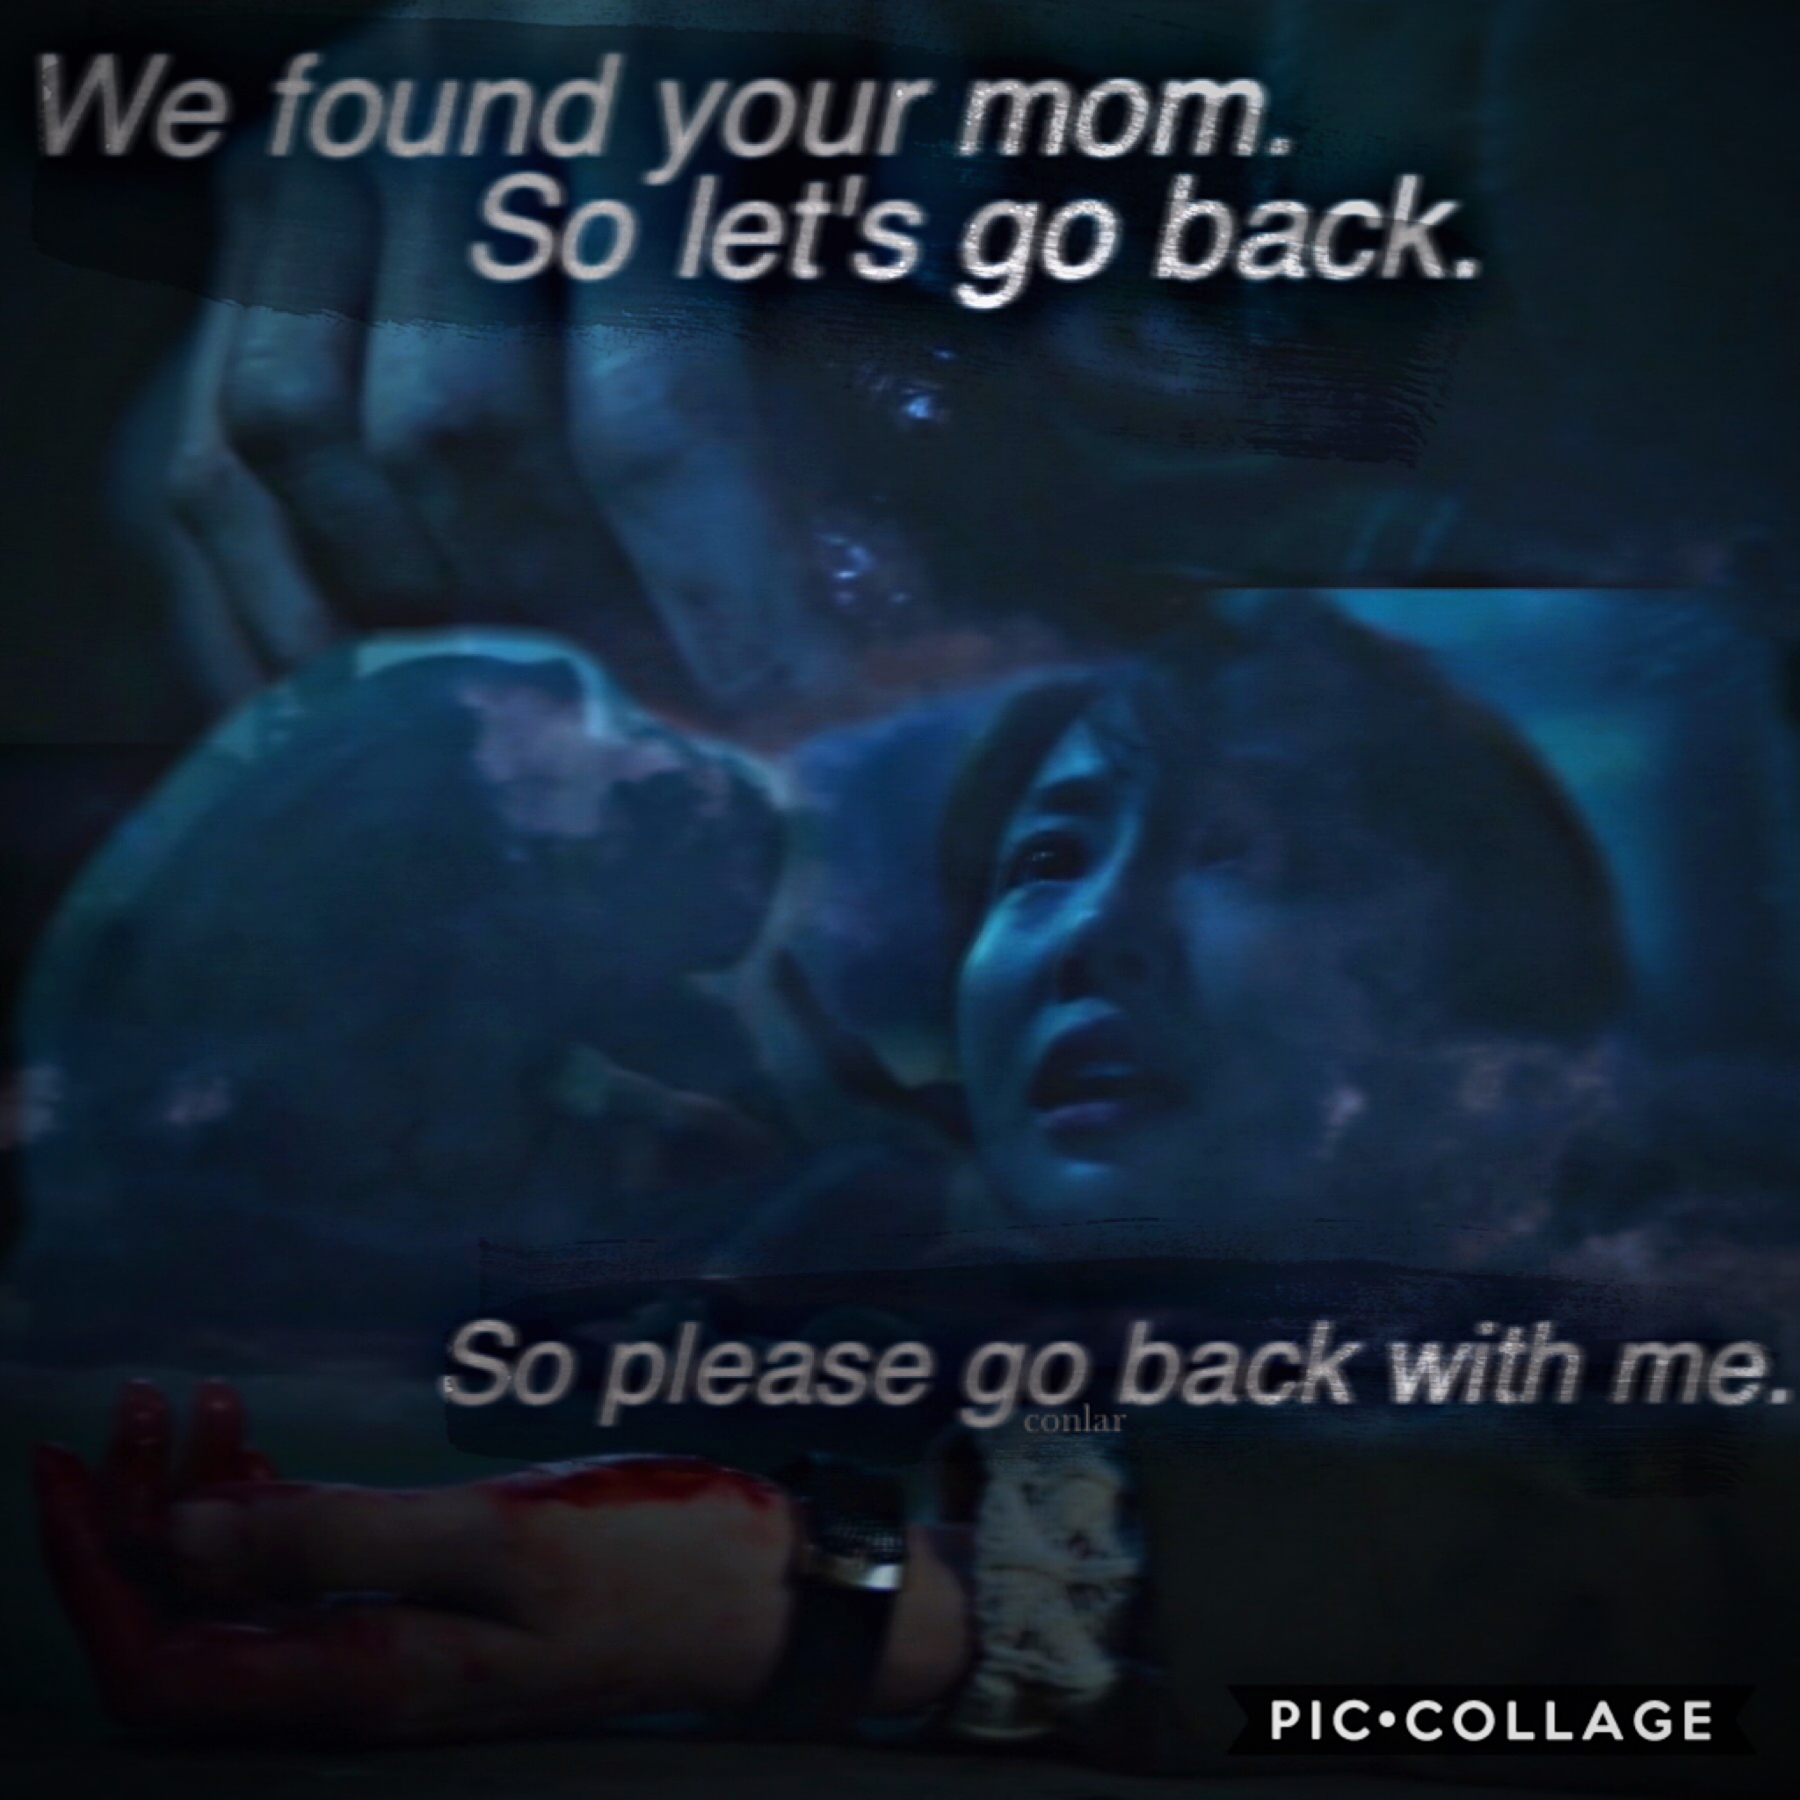 this was a last minute collage, so sorry if it looks bad. i started to remember this show...and i got so sad. these are the last words she says before she sadly dies in this tv show. she died in the arms of the guy she loved...and i cried so much. i'll ma